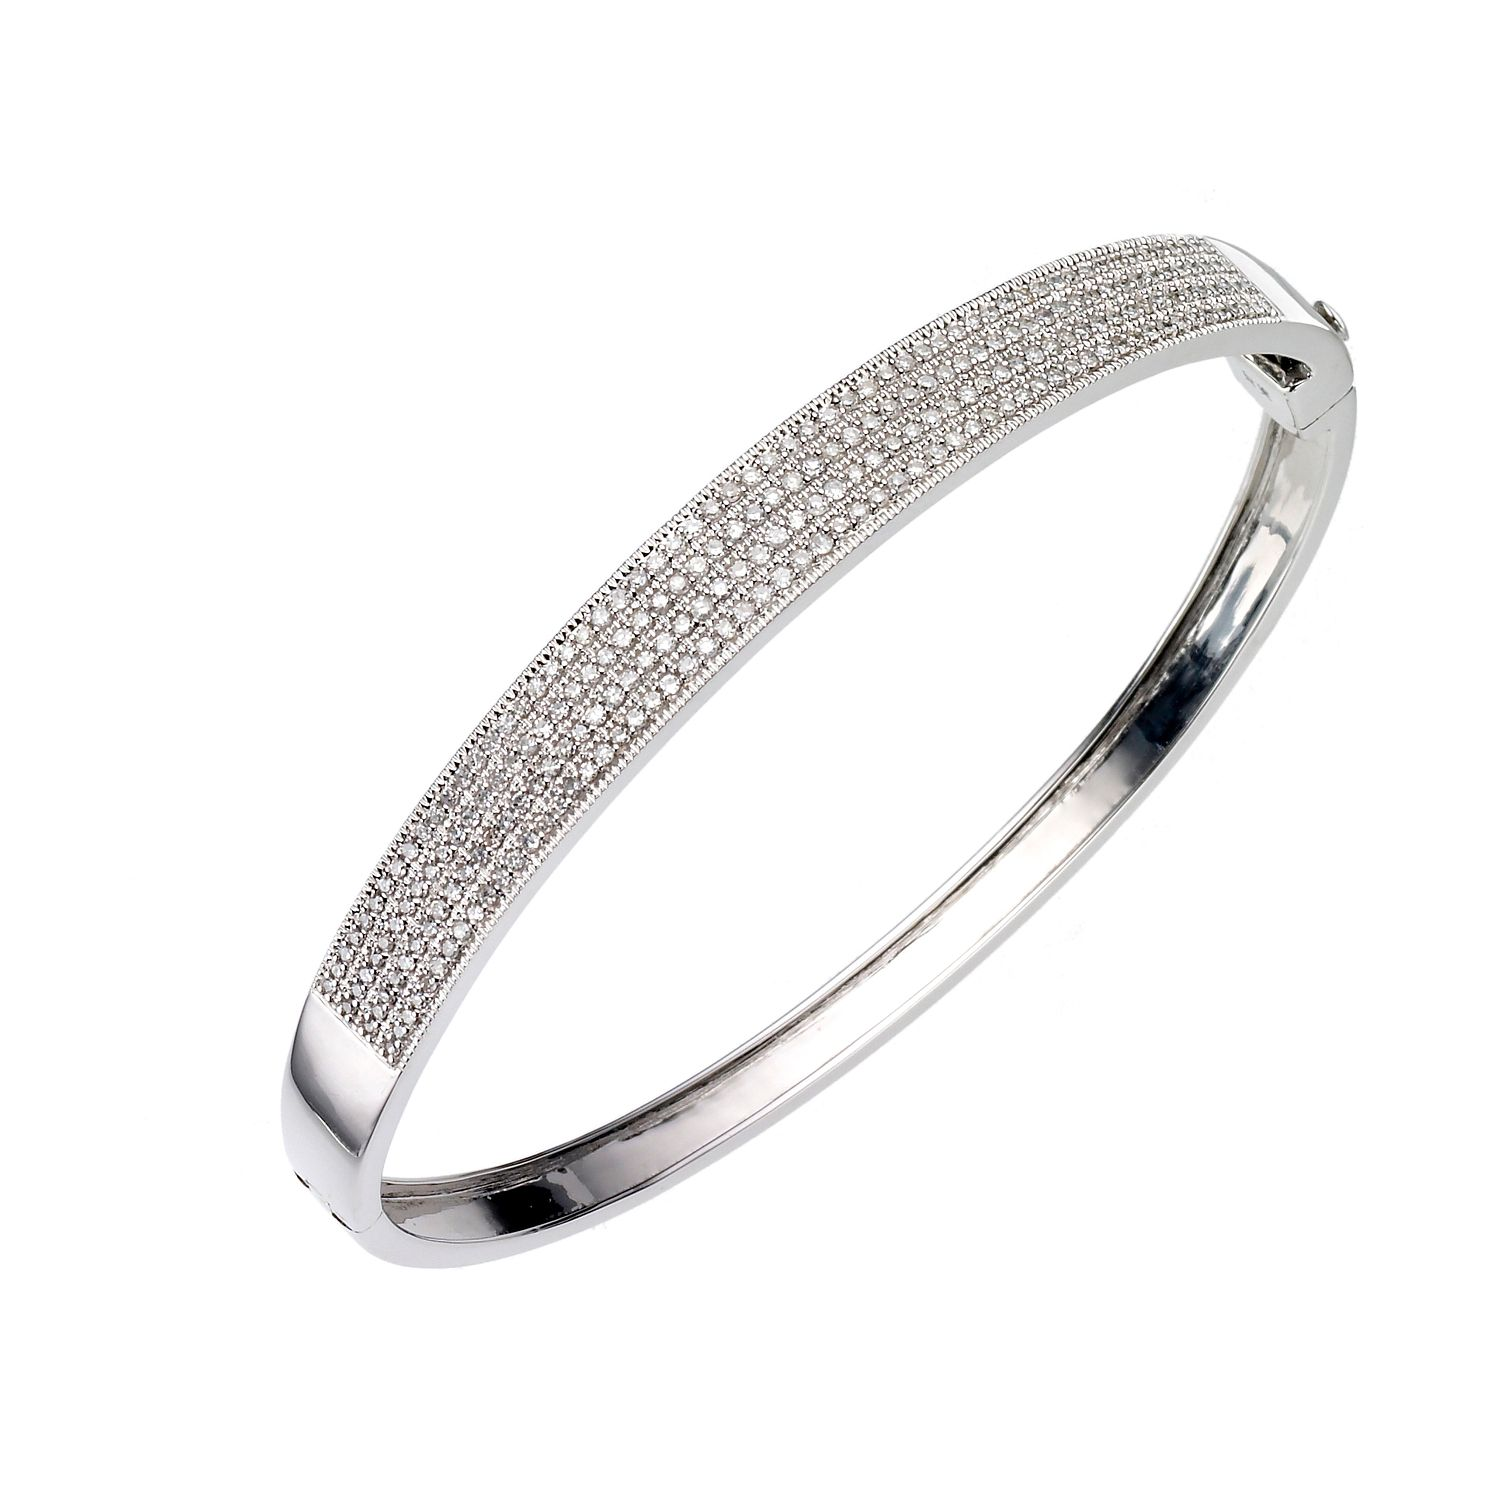 9ct White Gold One Carat Diamond Pave Set Bangle - Product number 8017816